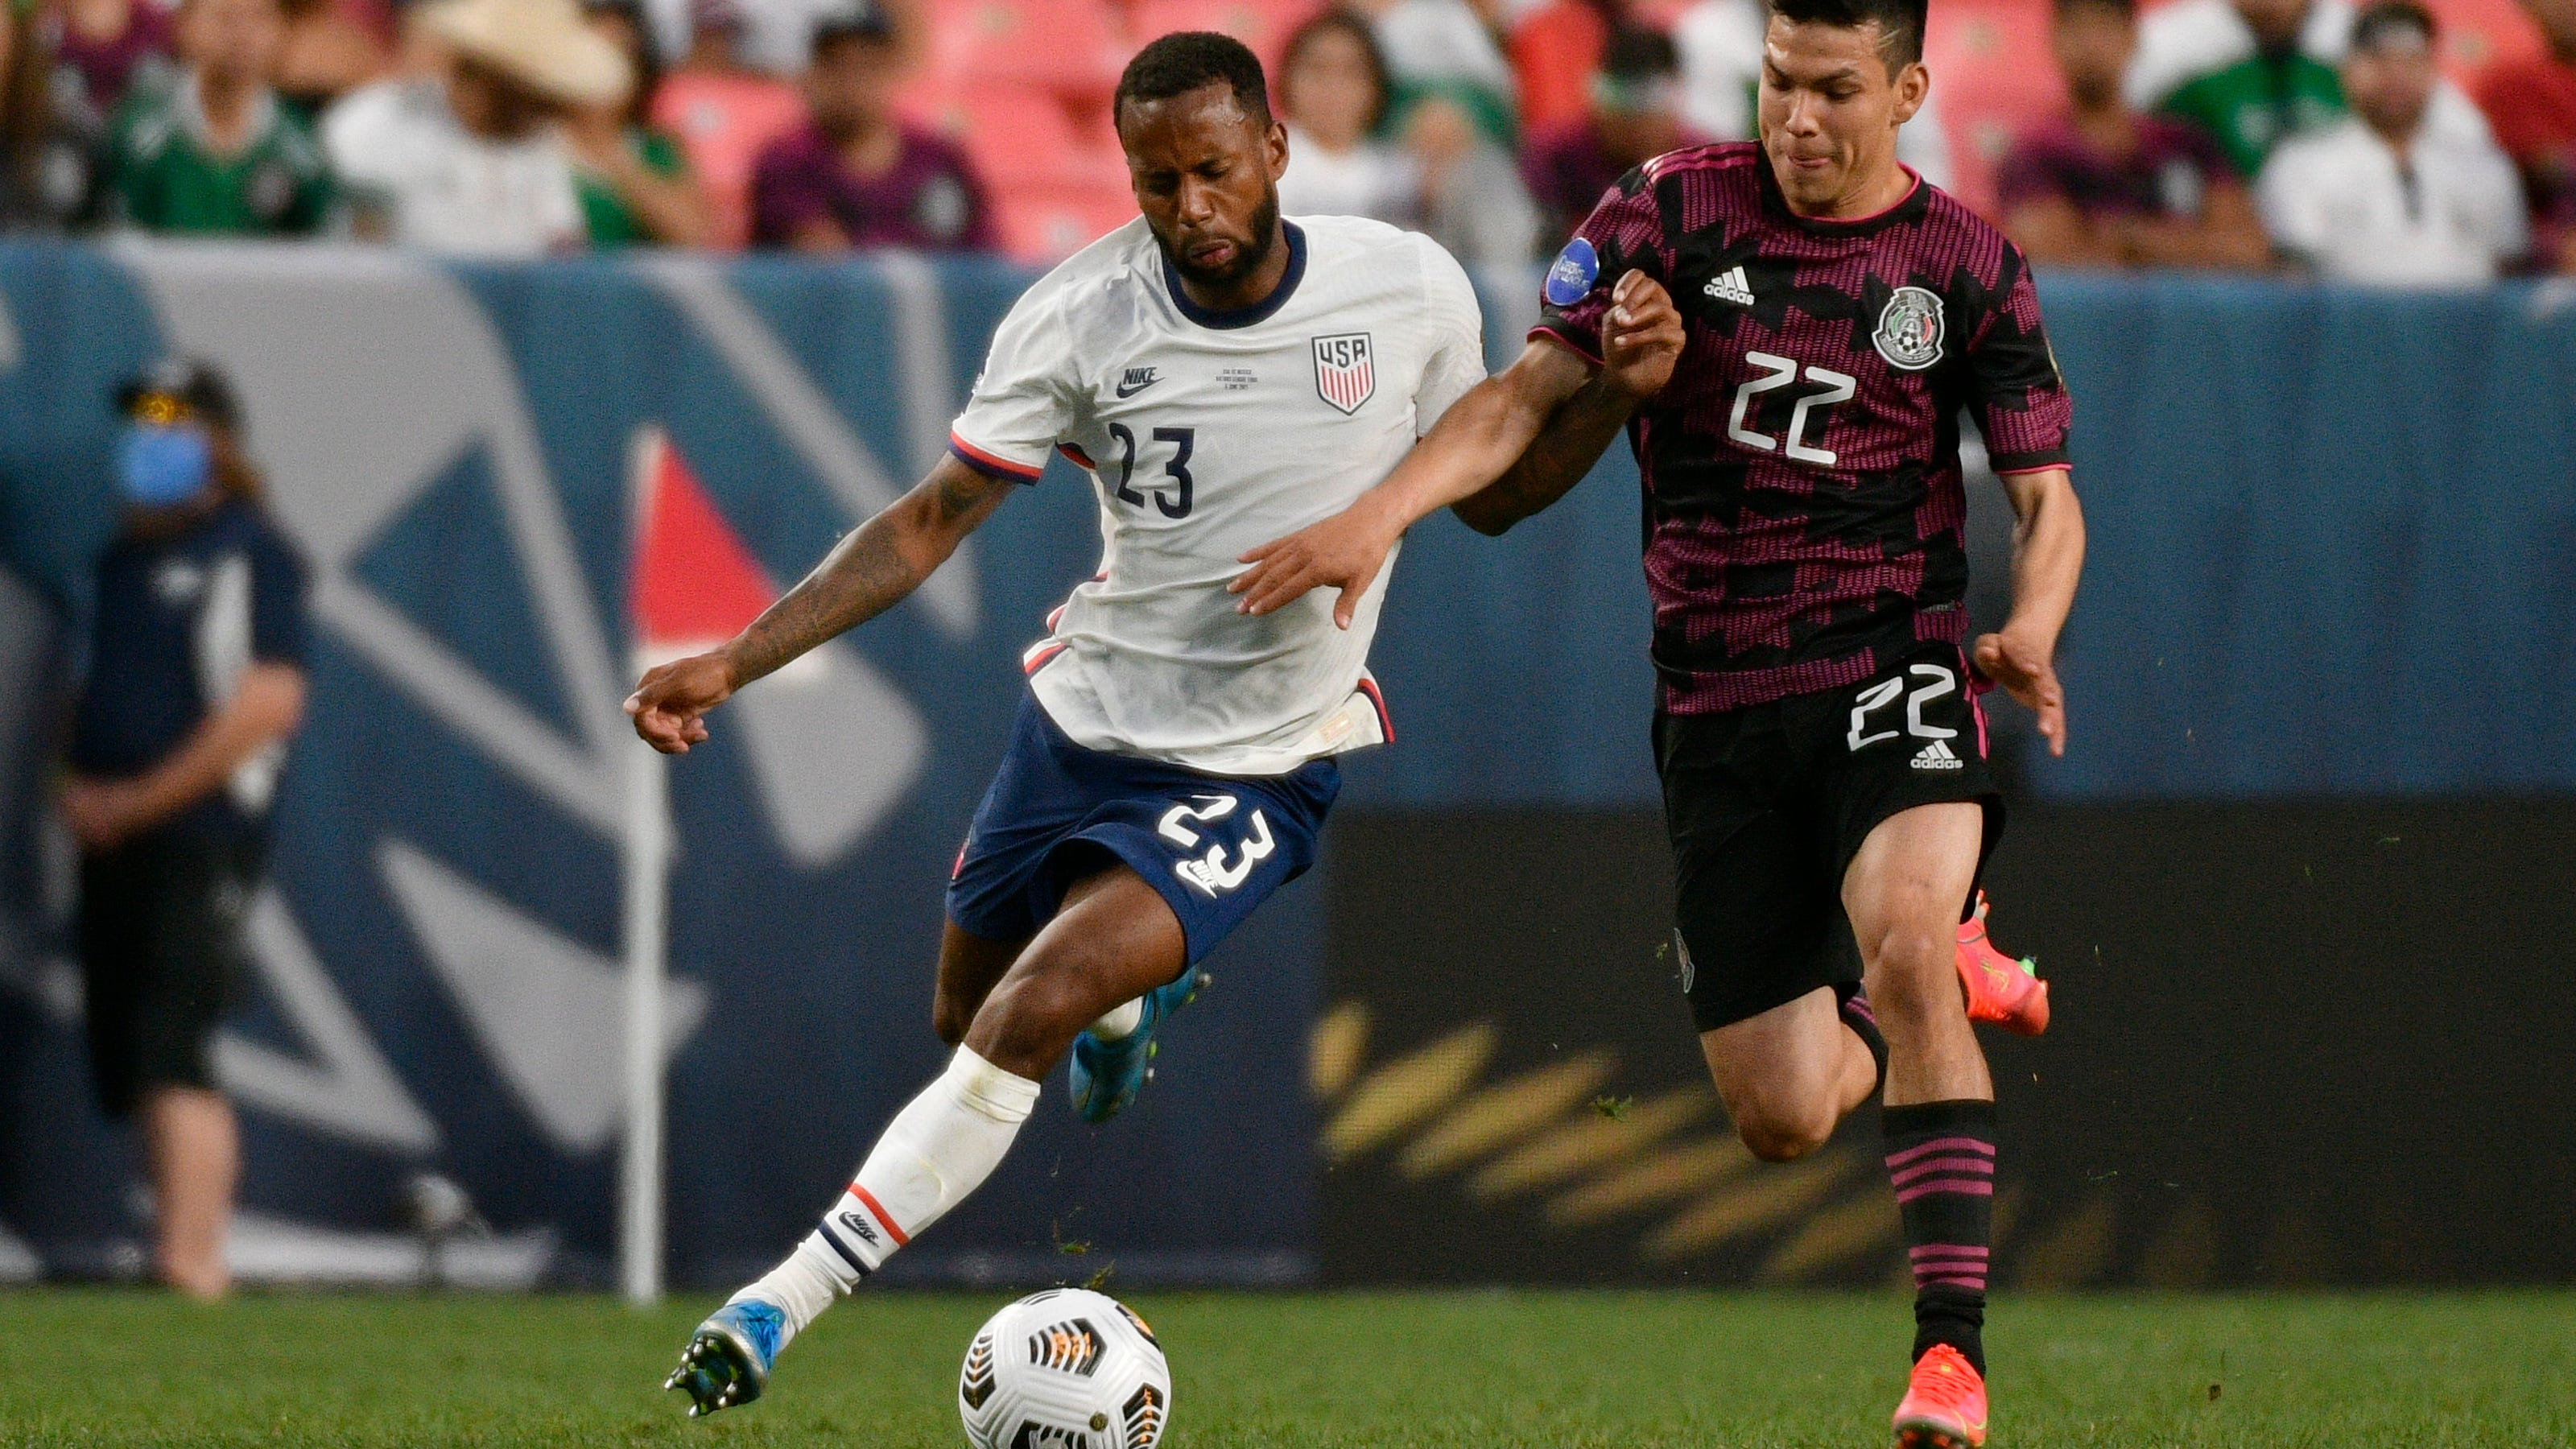 Concacaf Gold Cup 2021: Live stream, how to watch on TV, betting odds, game times